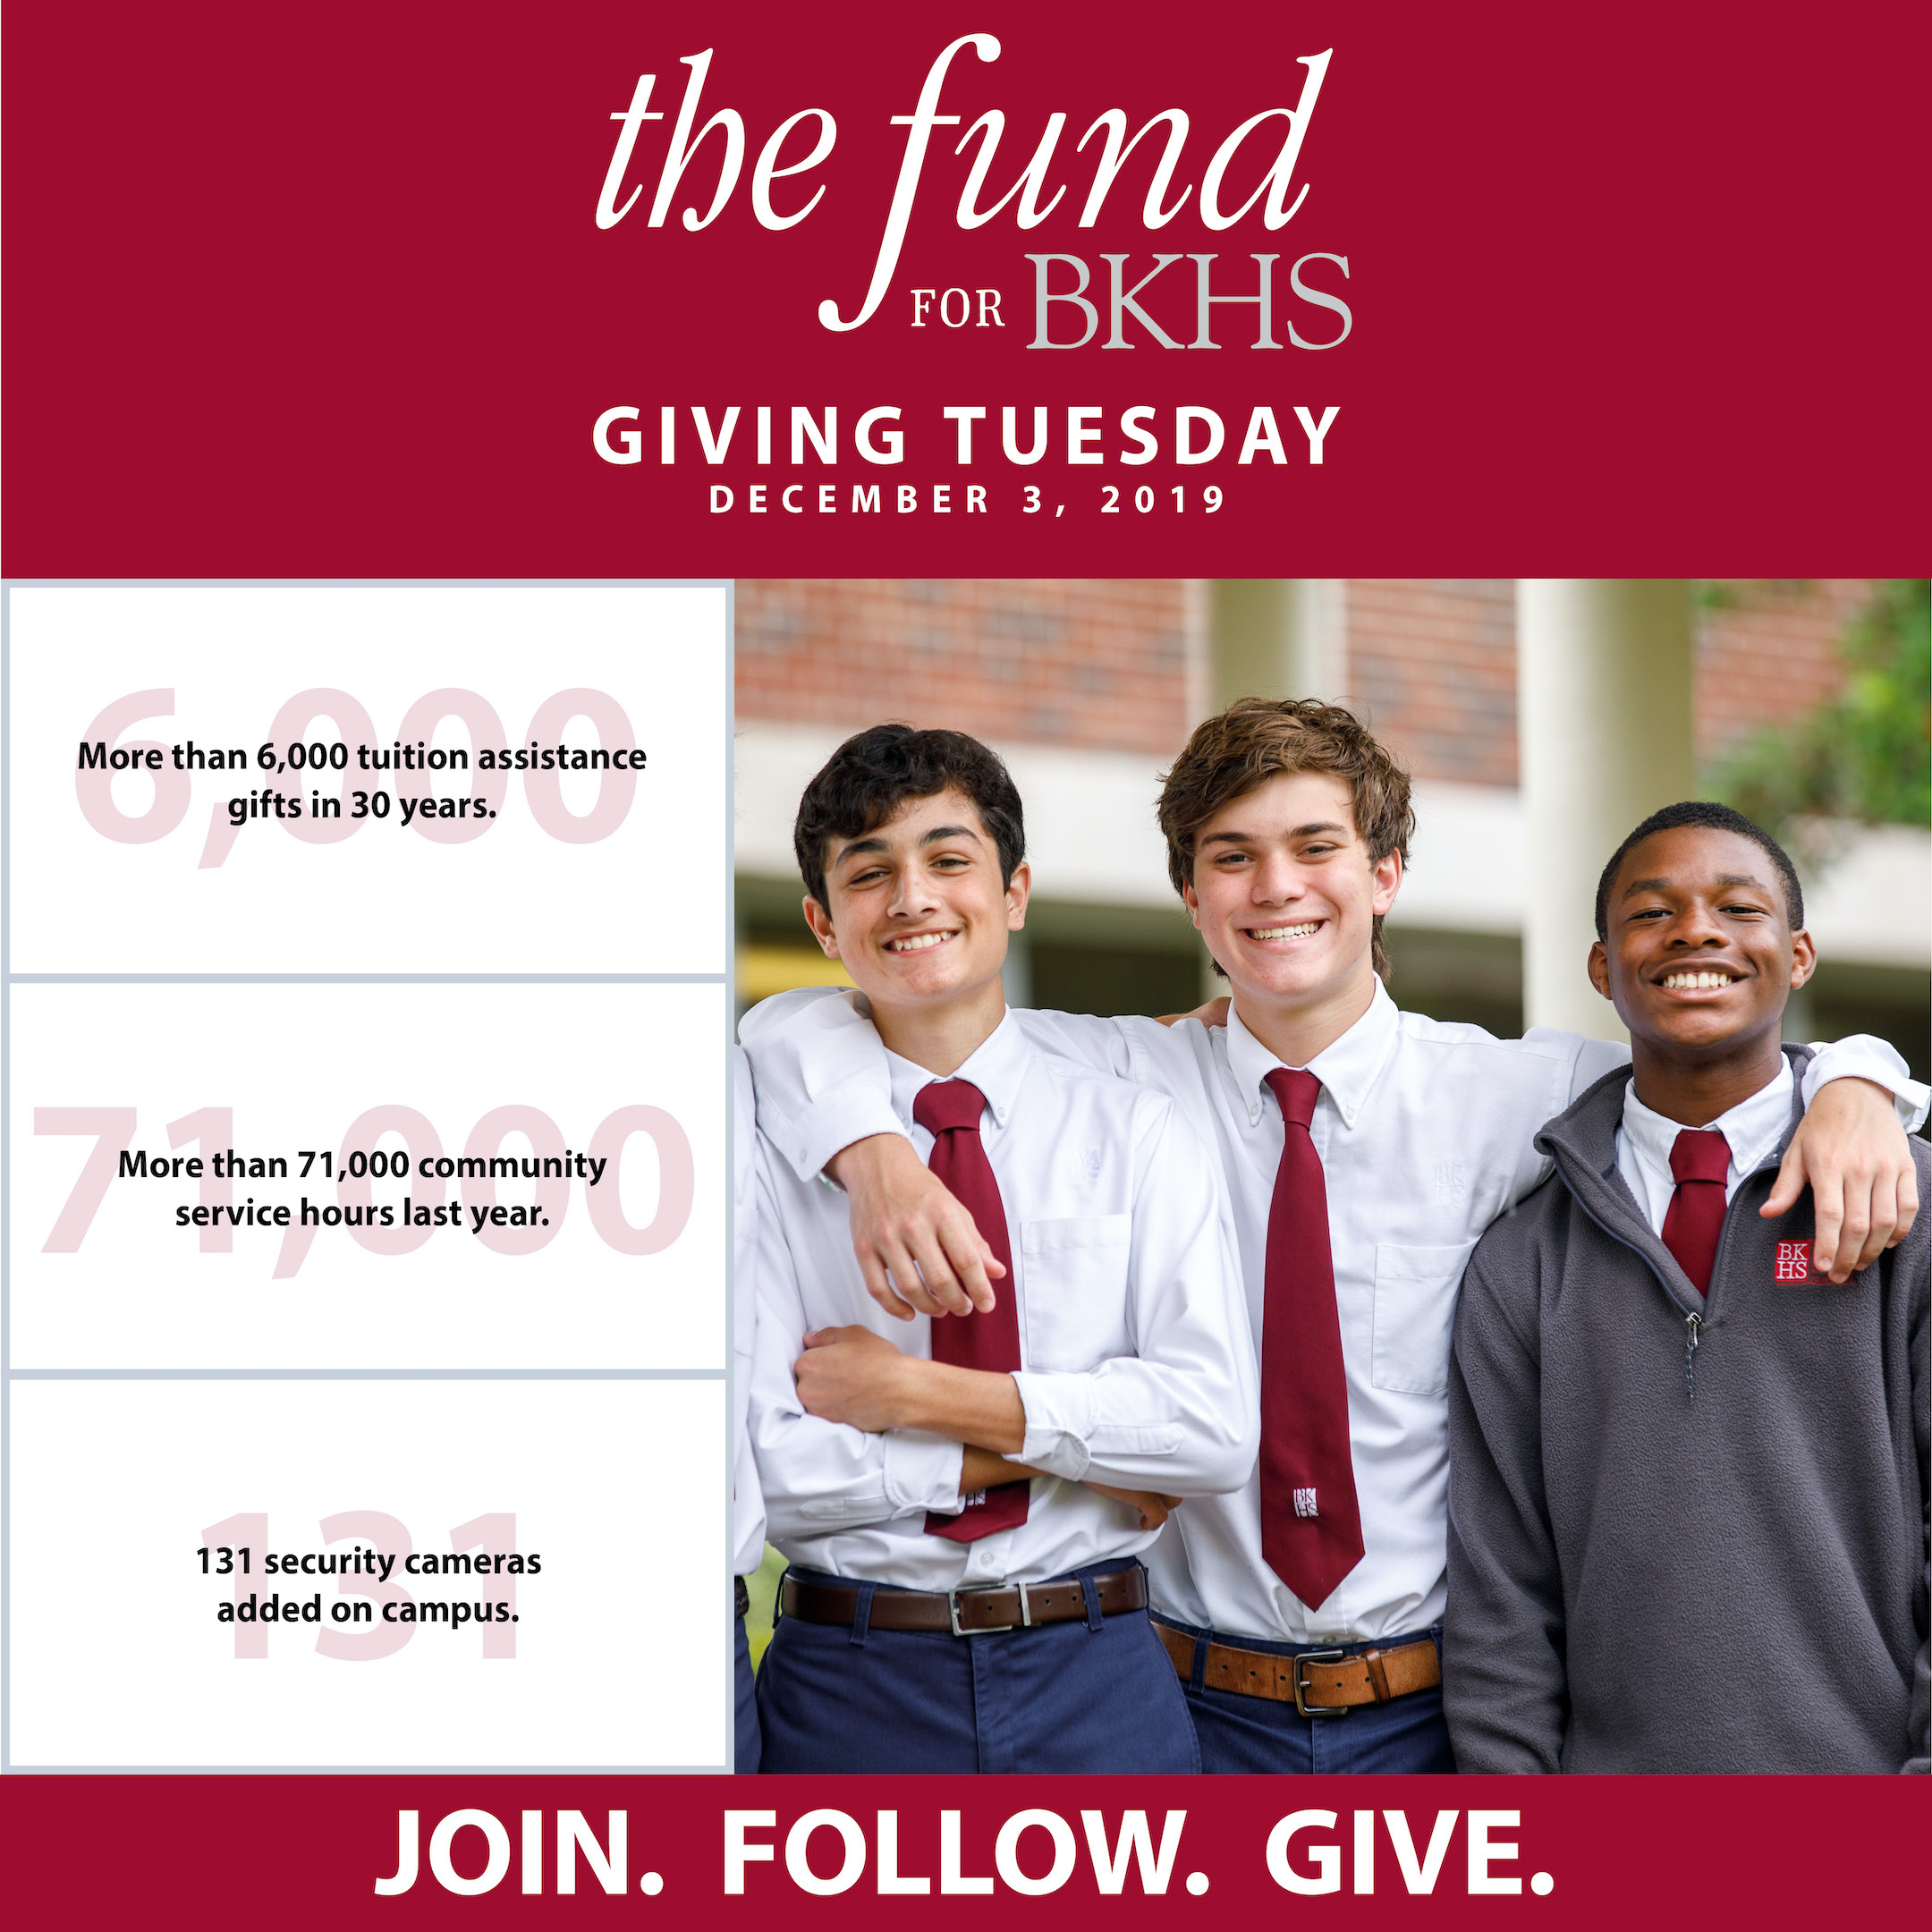 Join. Follow. Give on Giving Tuesday.